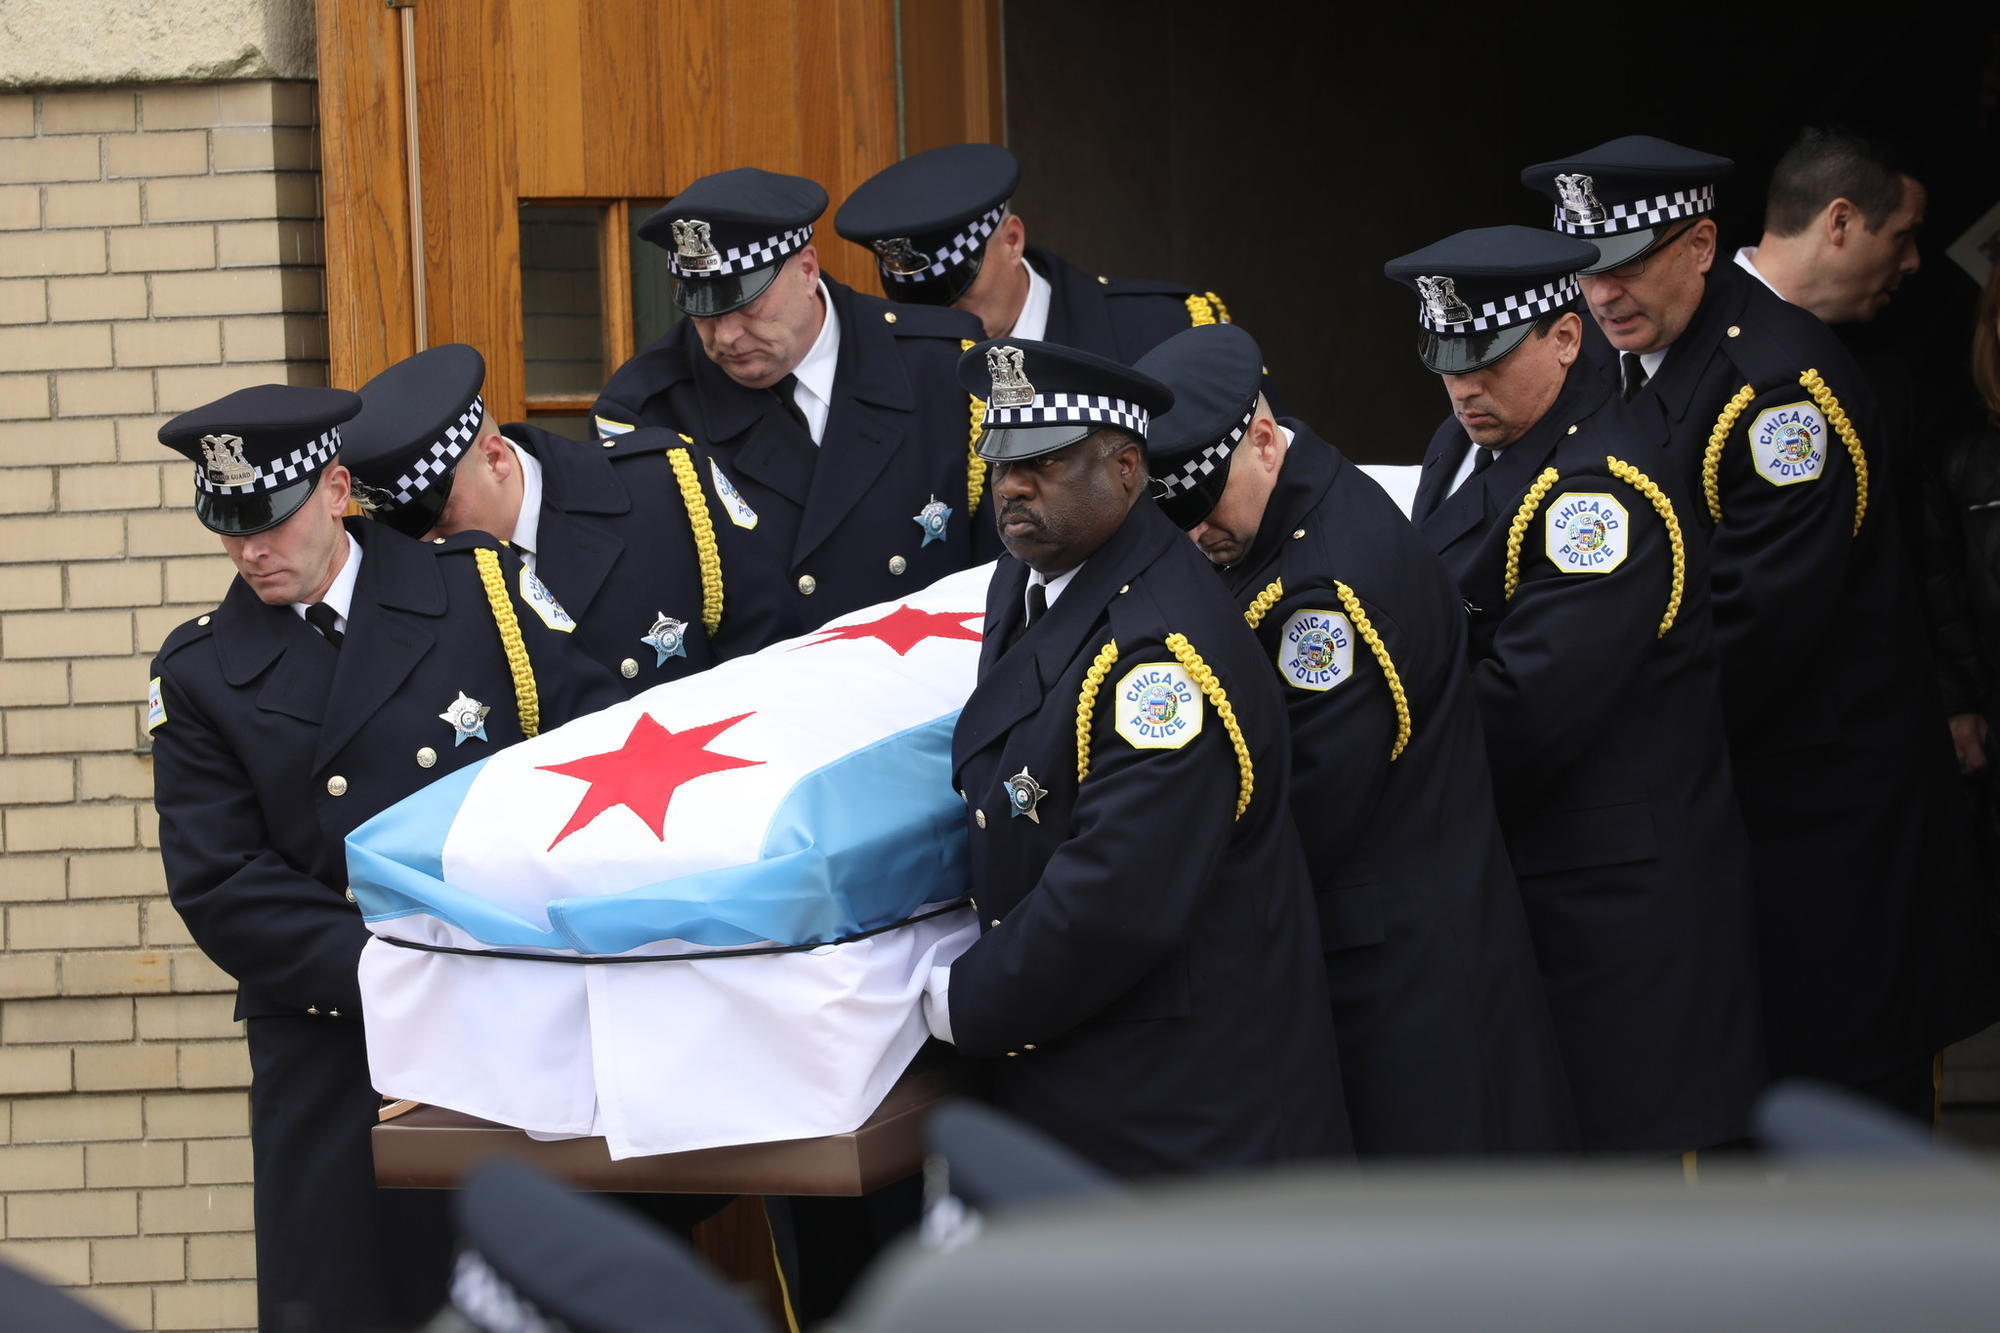 slain police commander laid to rest with stories of selflessness